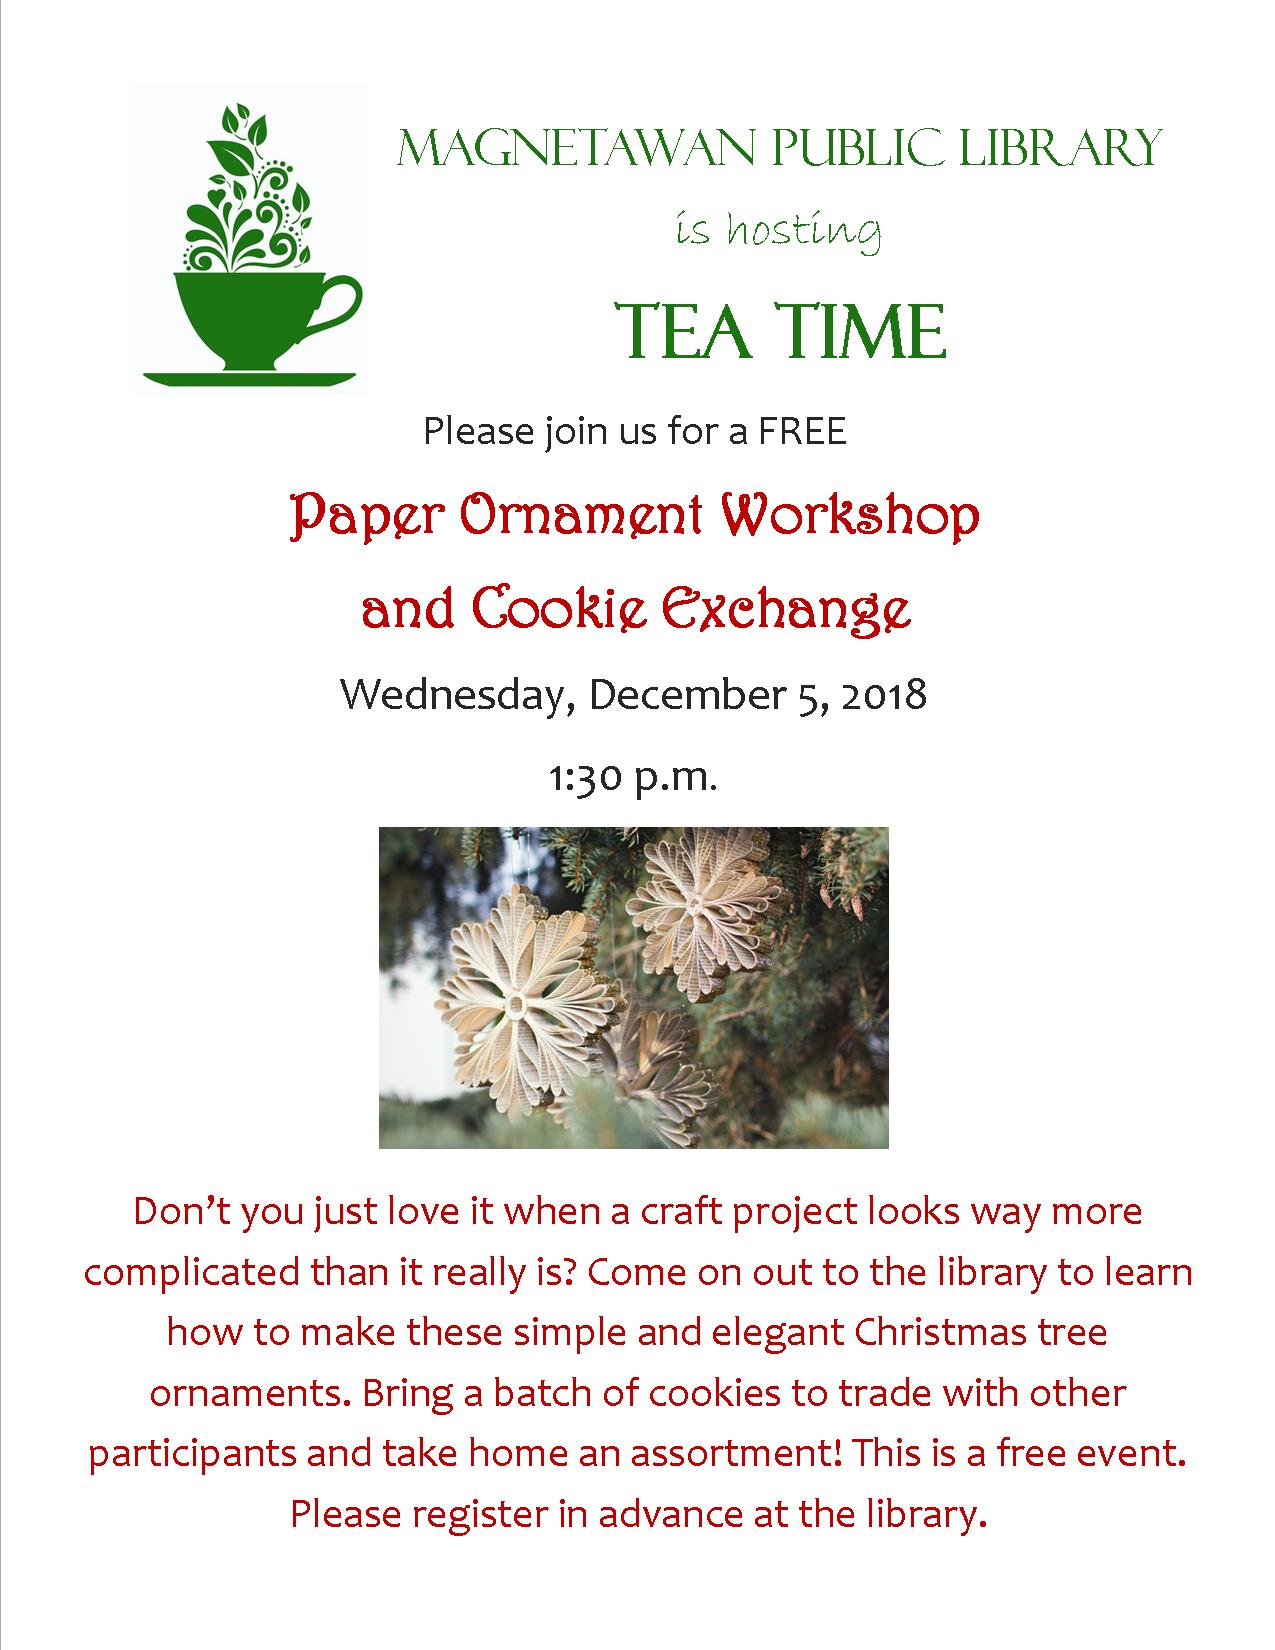 Event poster for Cookie Exchange and Paper Ornament Workshop